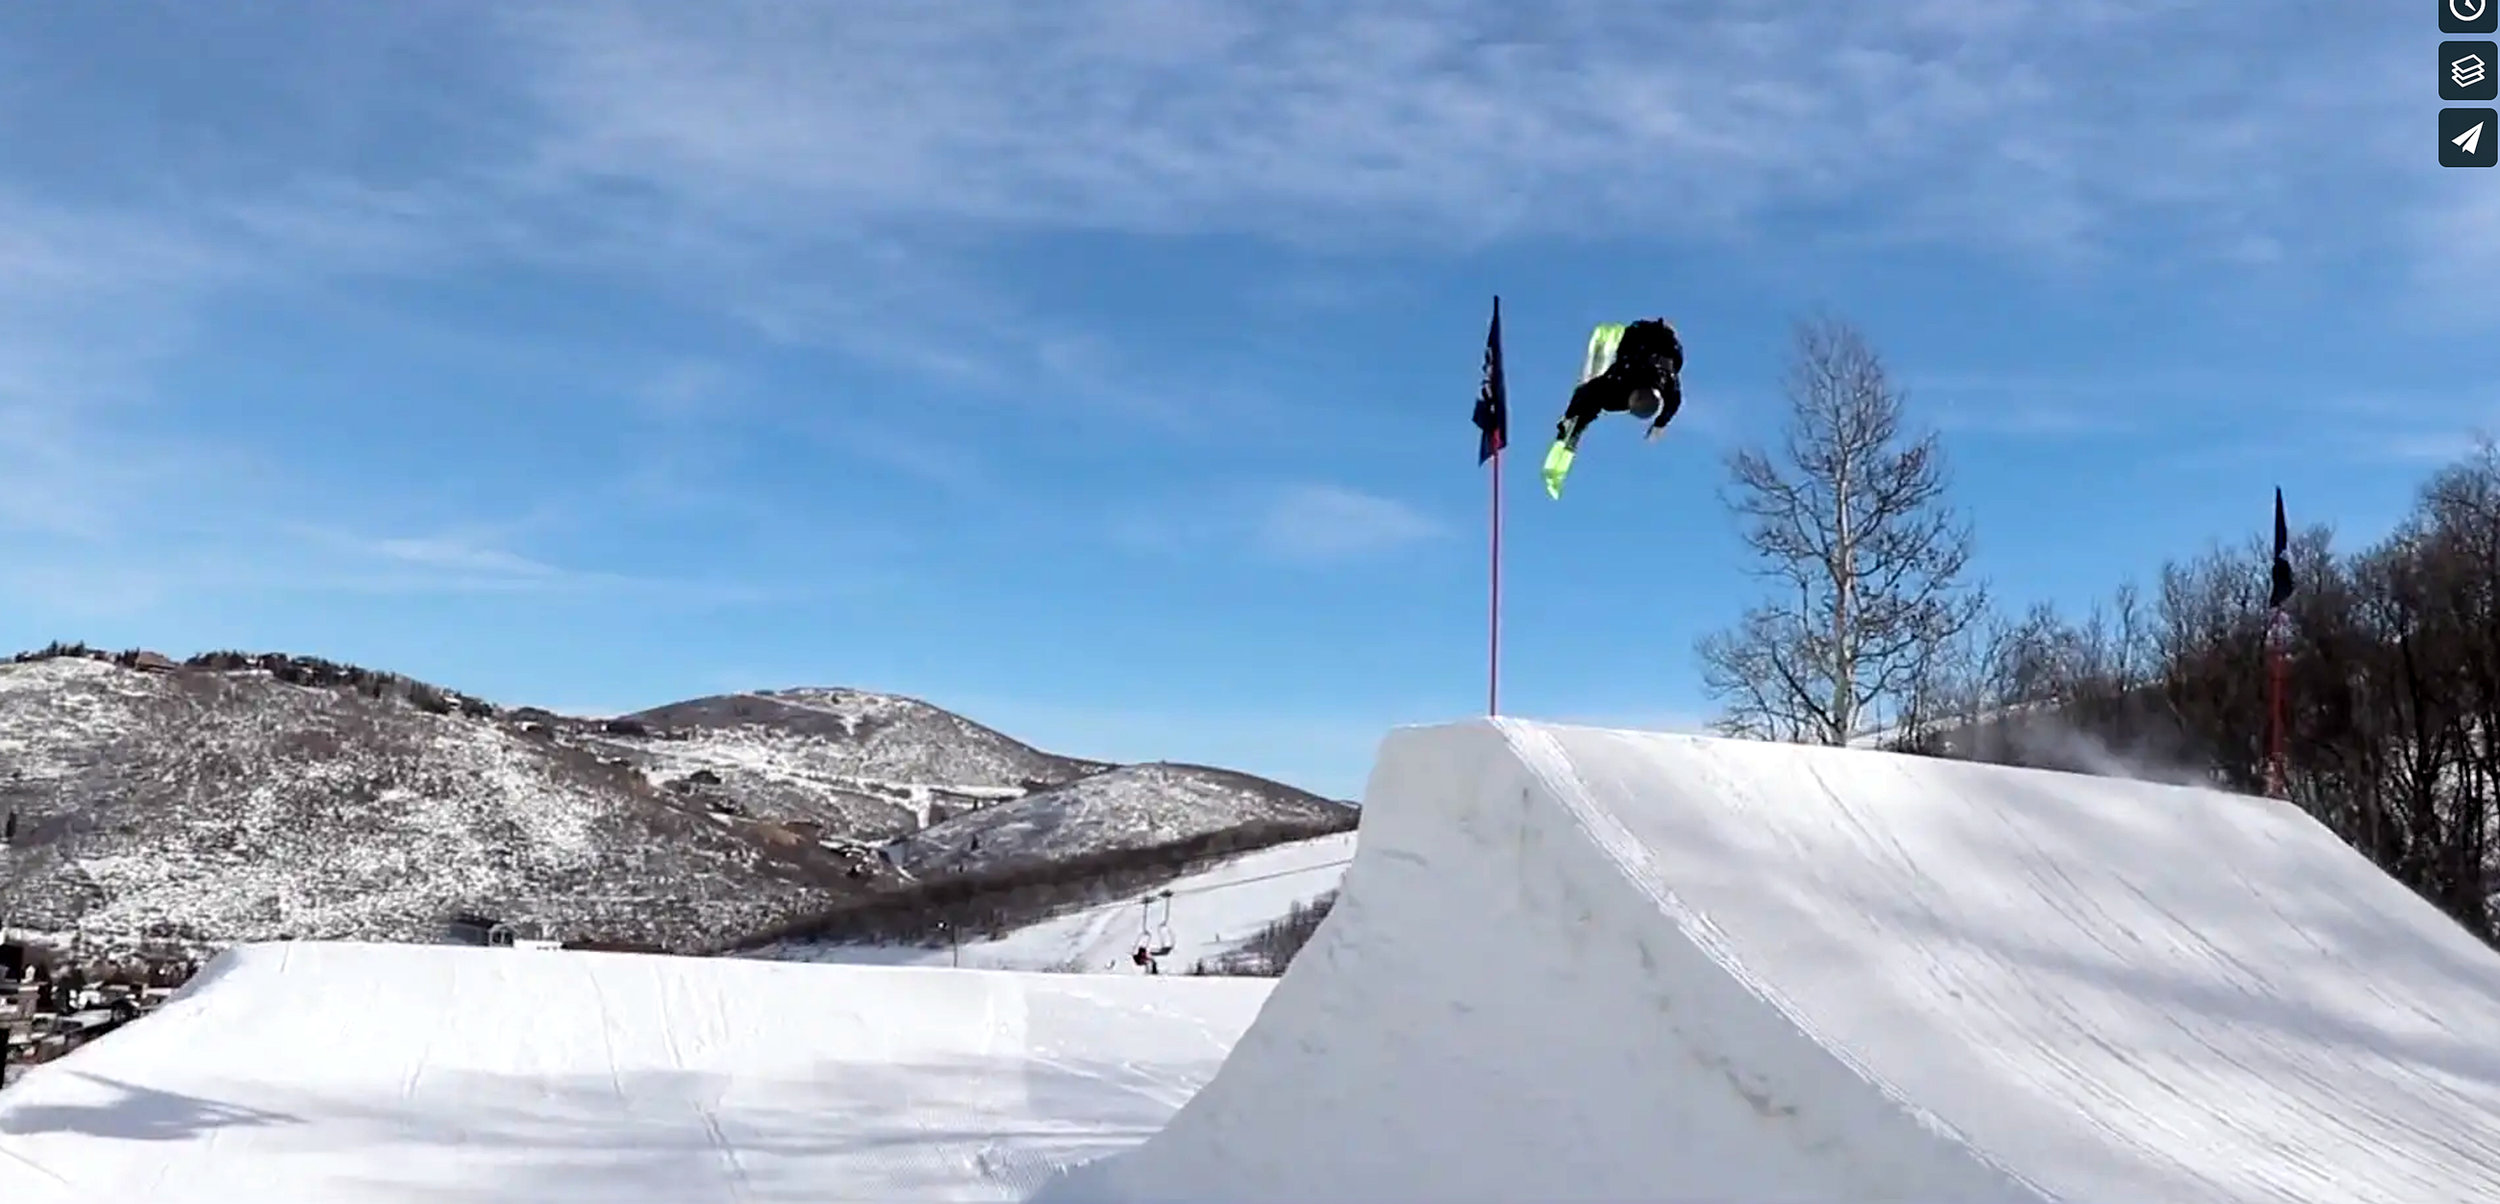 """Pushing the Boundaries"" by Jack Price was named the winner of the 2019 Breaking Boundaries Snowboard, Freestyle, and Freeski World Championships Youth Film Contest."